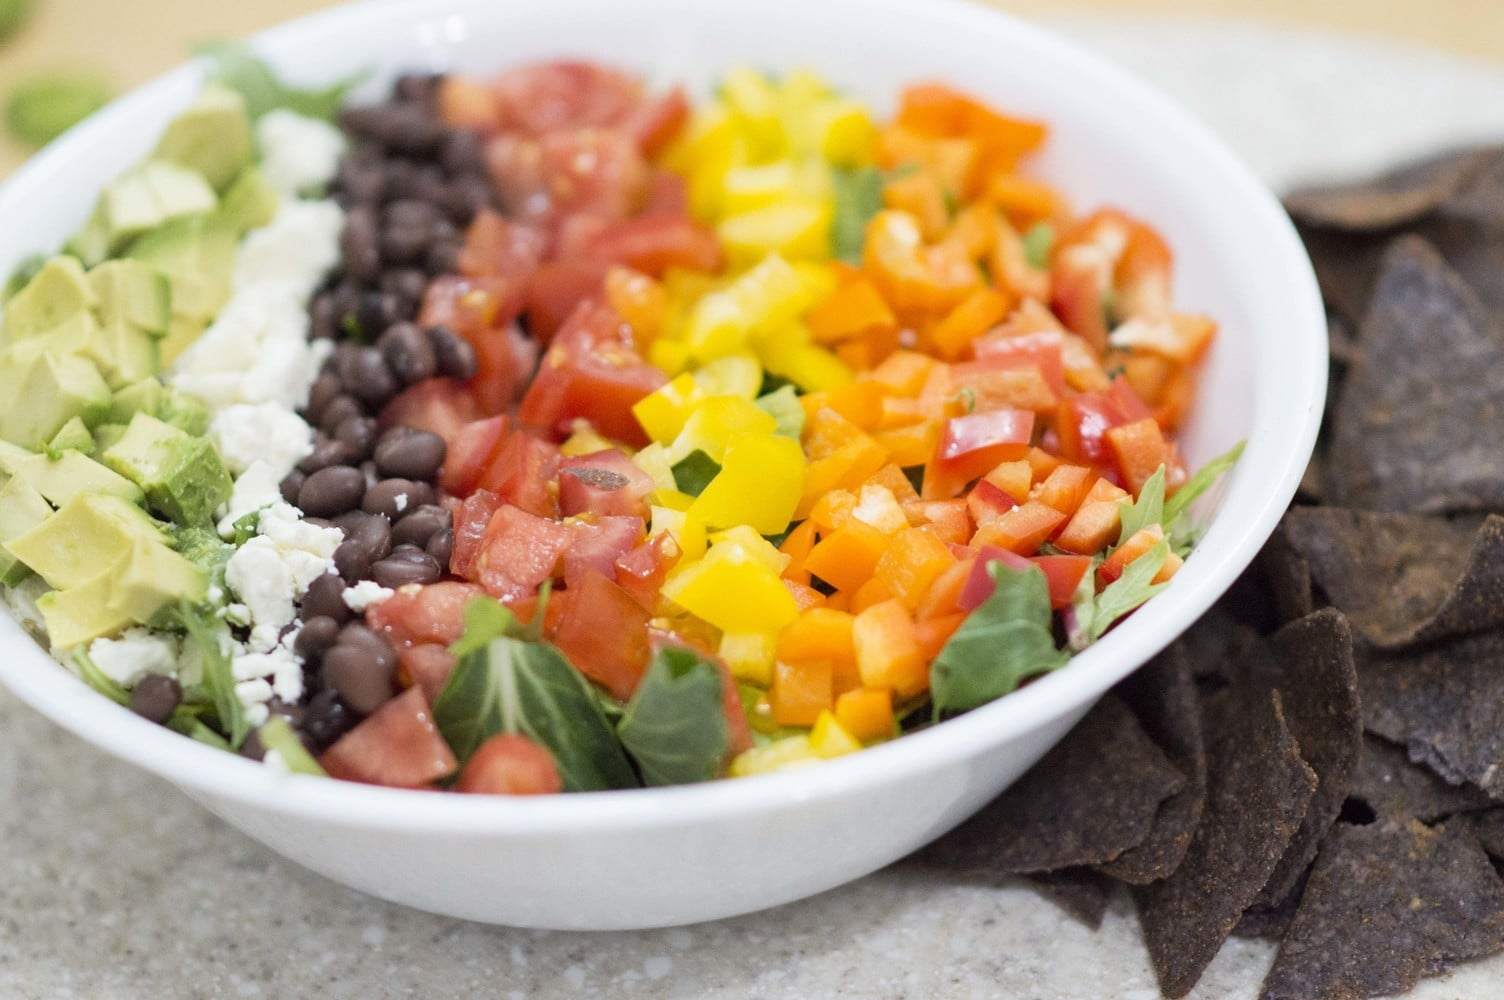 The Rainbow Taco Salad served and ready to eat